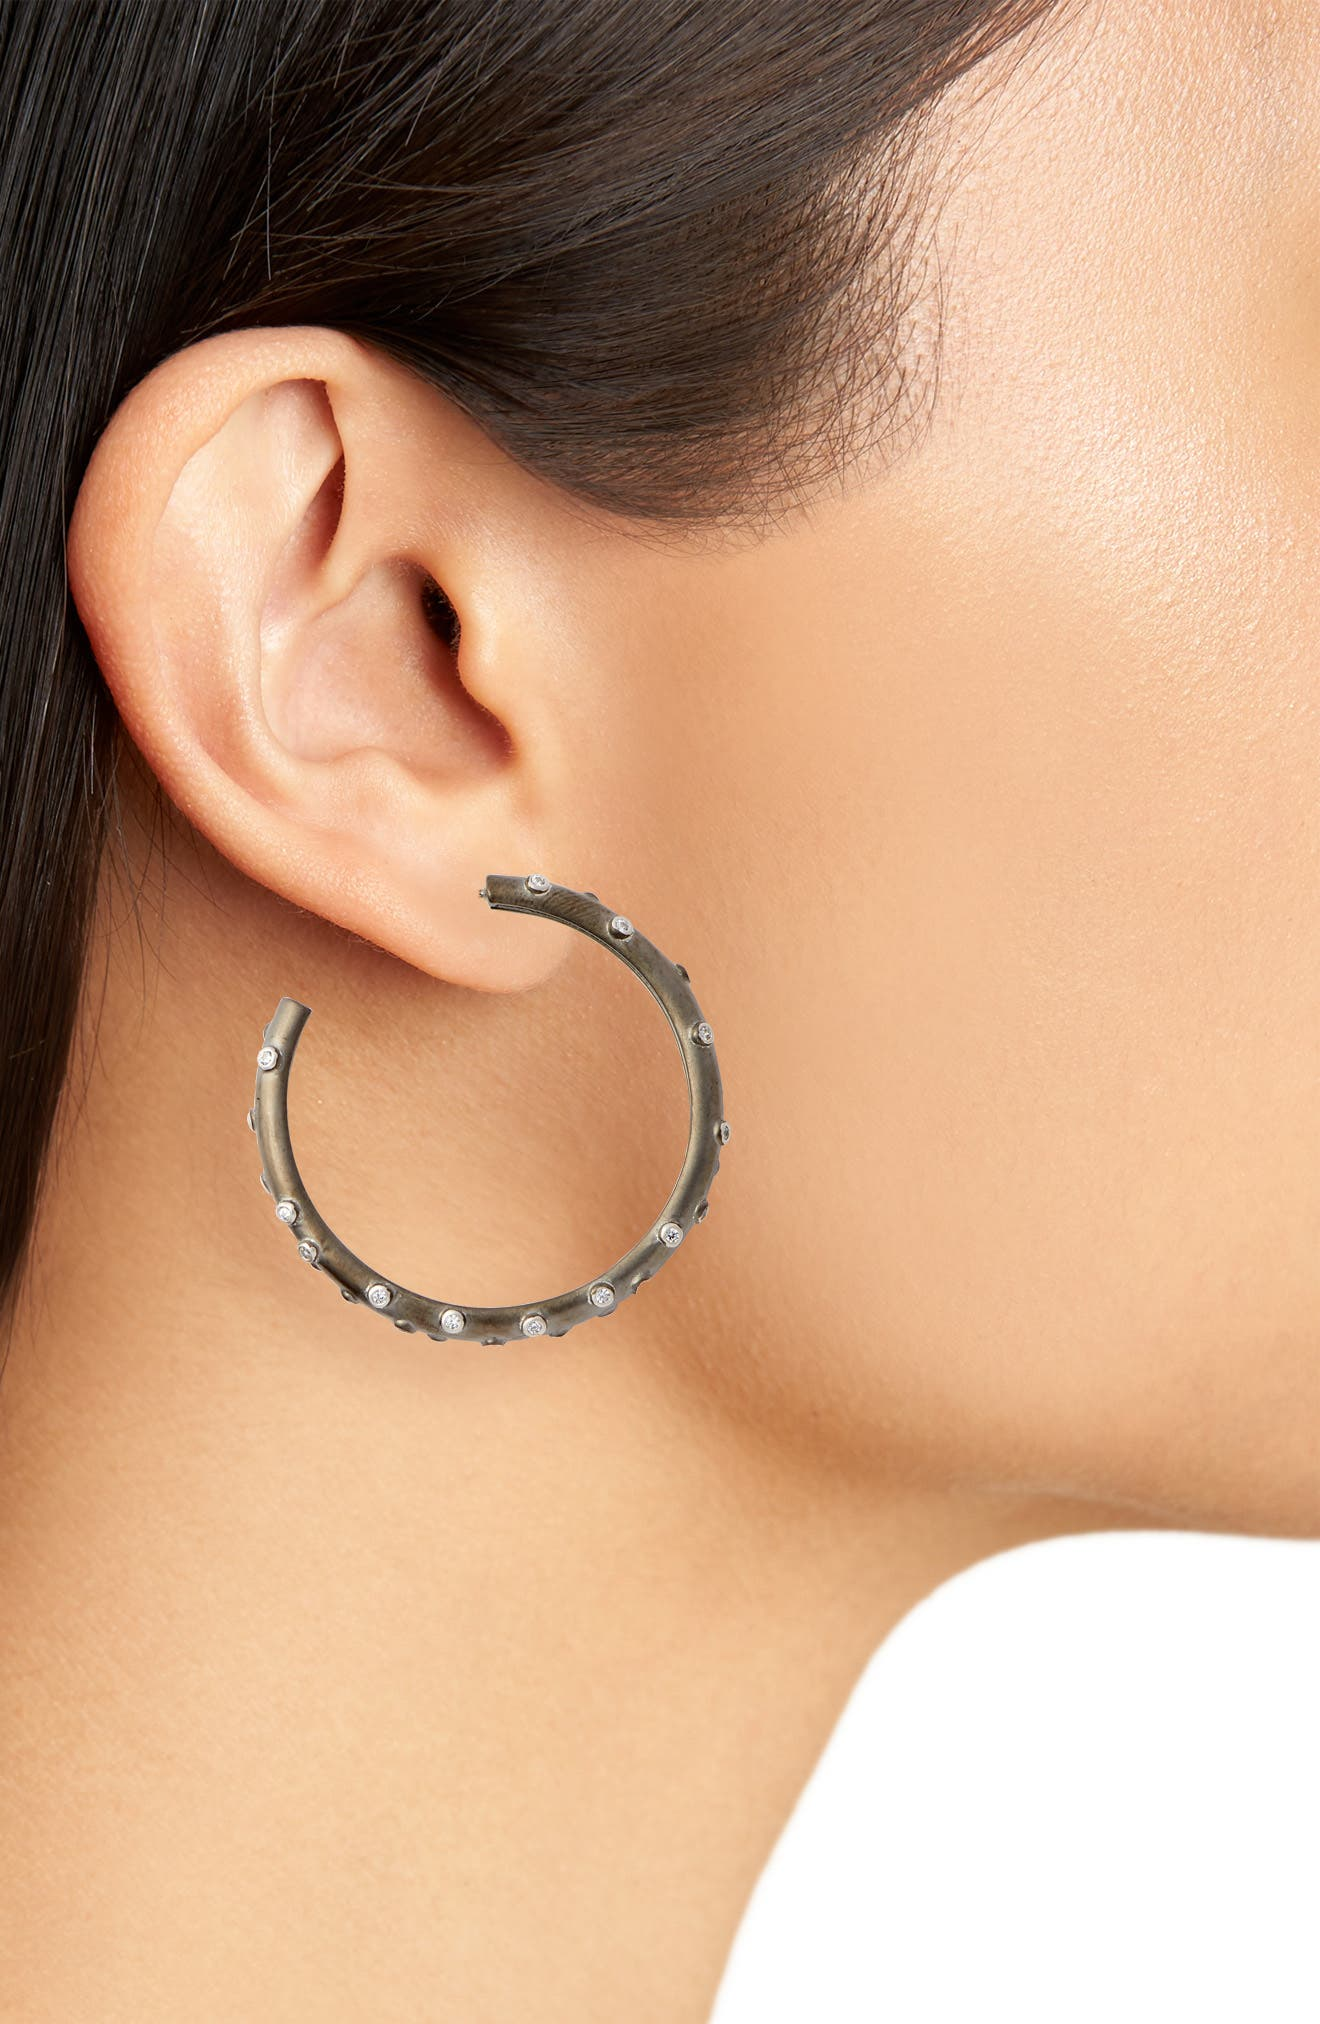 FREIDA ROTHMAN, Chunky C-Hoop Earrings, Alternate thumbnail 3, color, BLACK/ WHITE/ SILVER